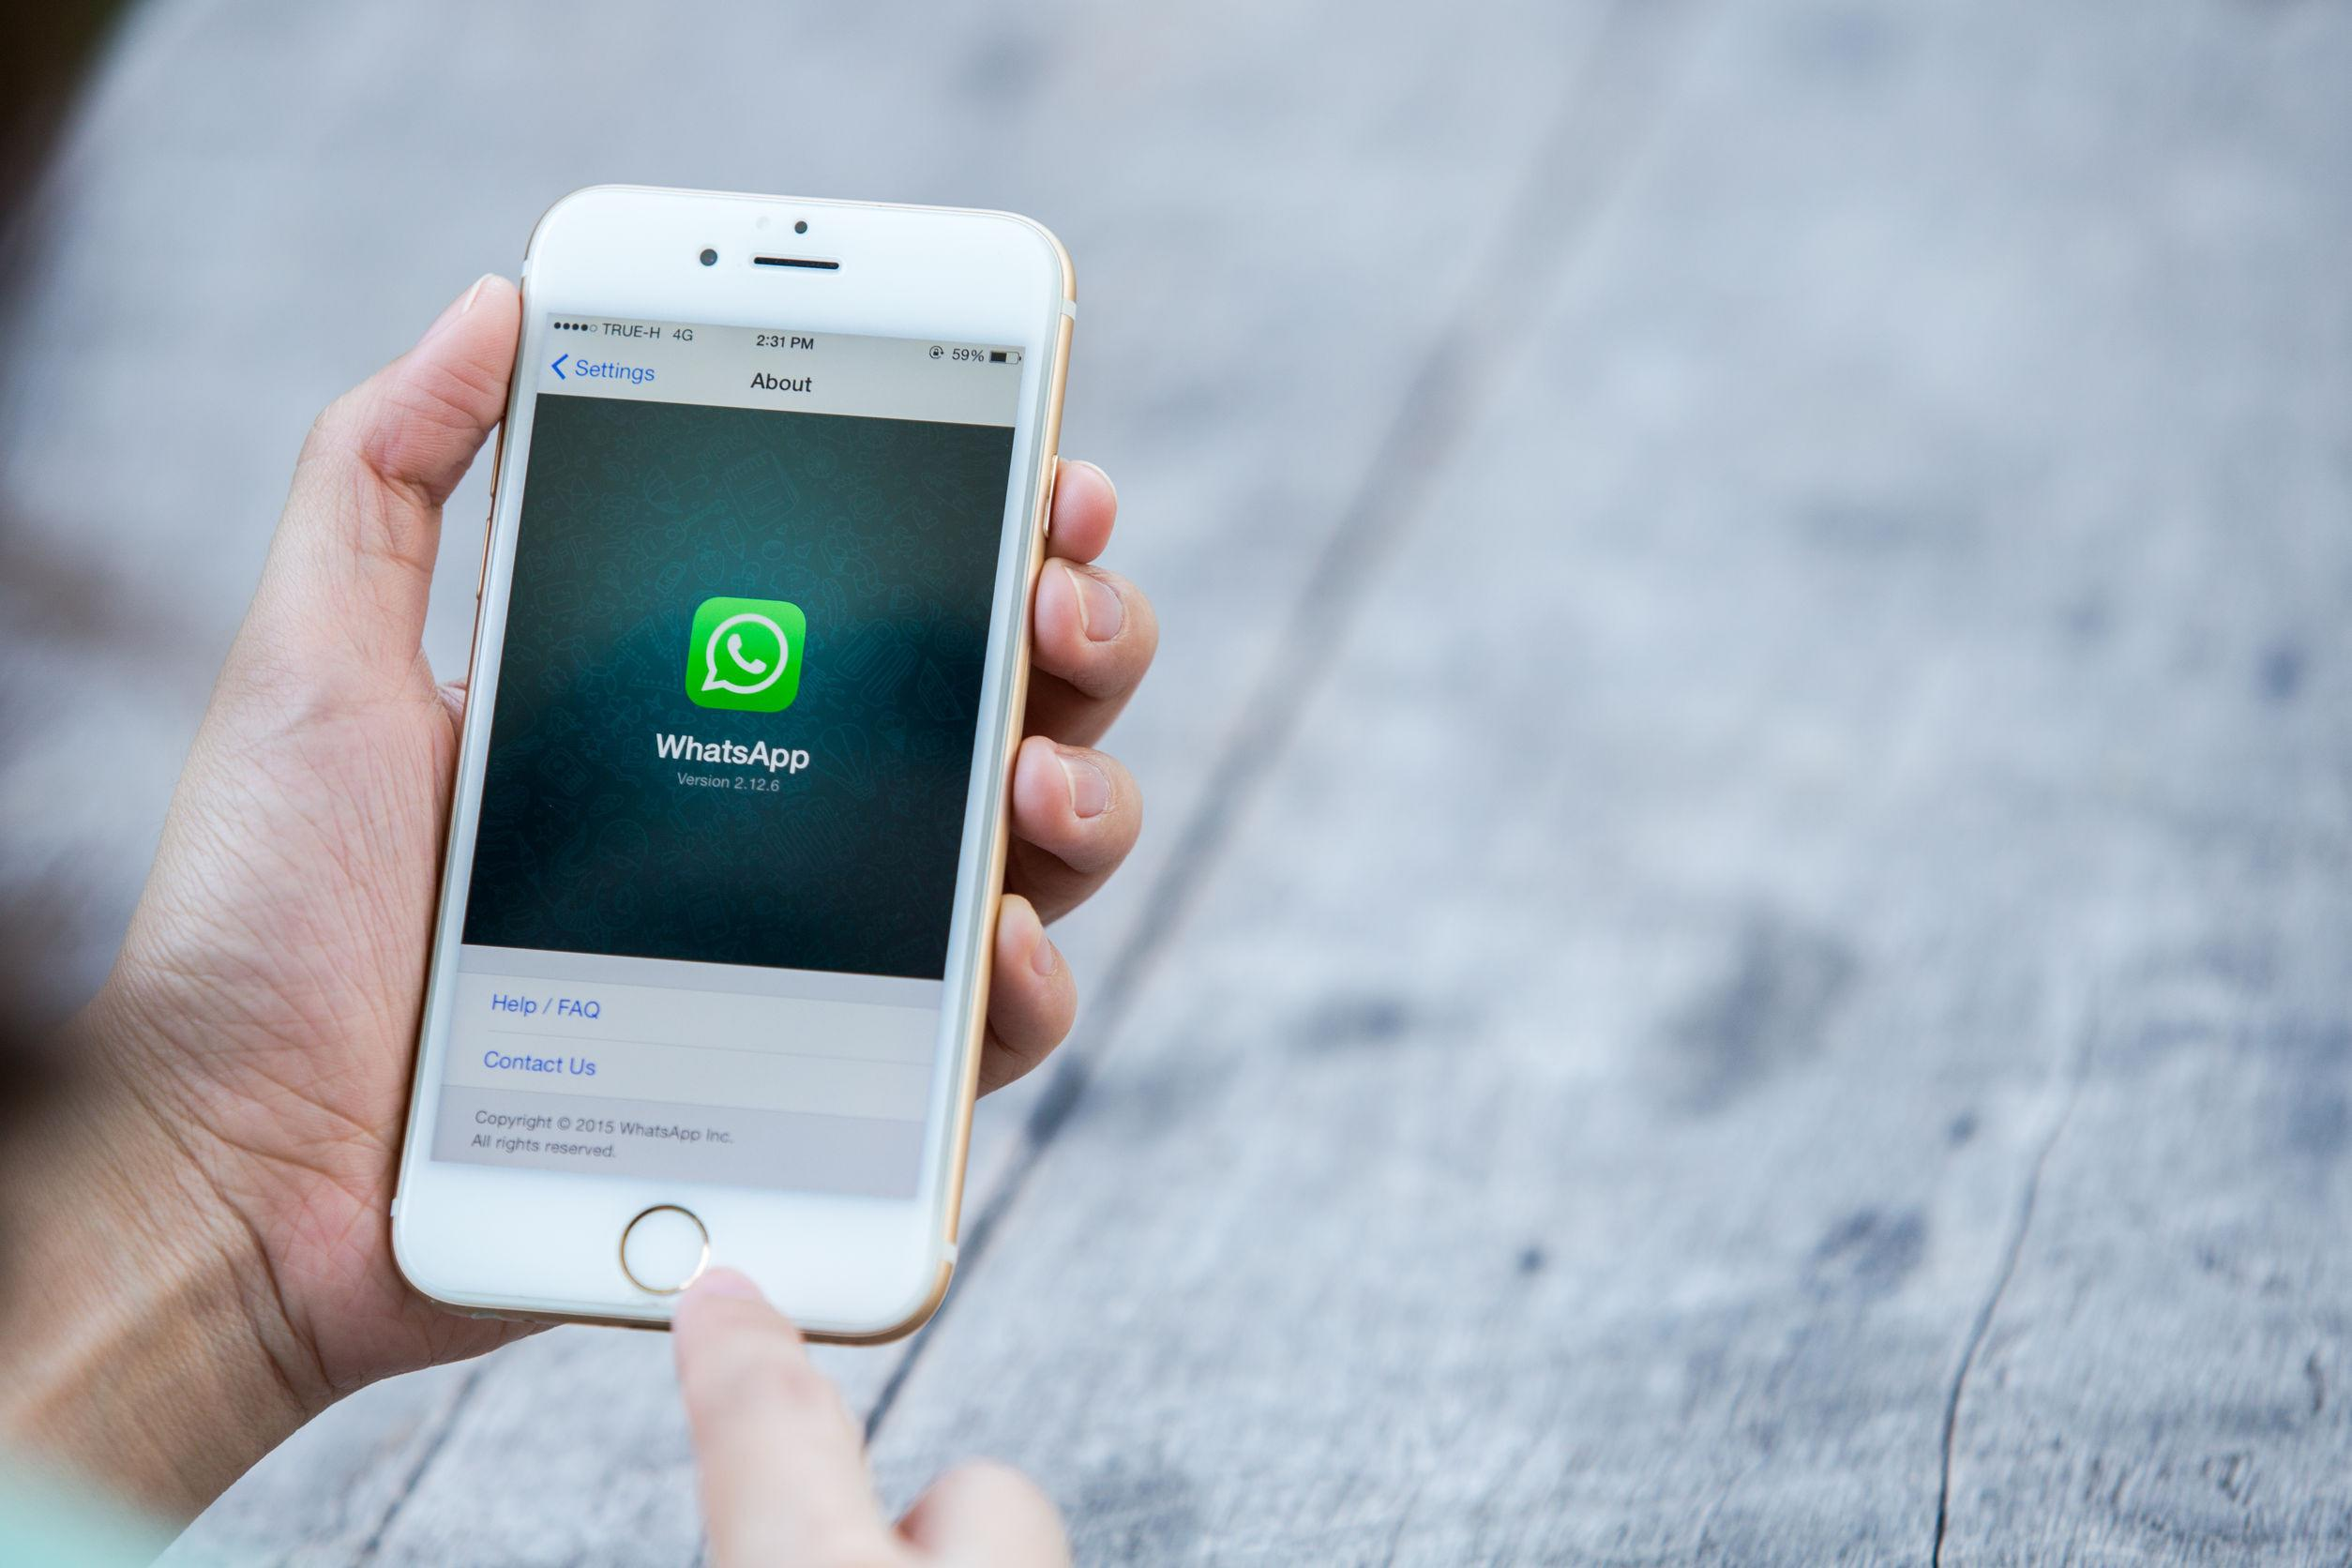 WhatsApp shares data with Facebook, planning ways to connect to businesses